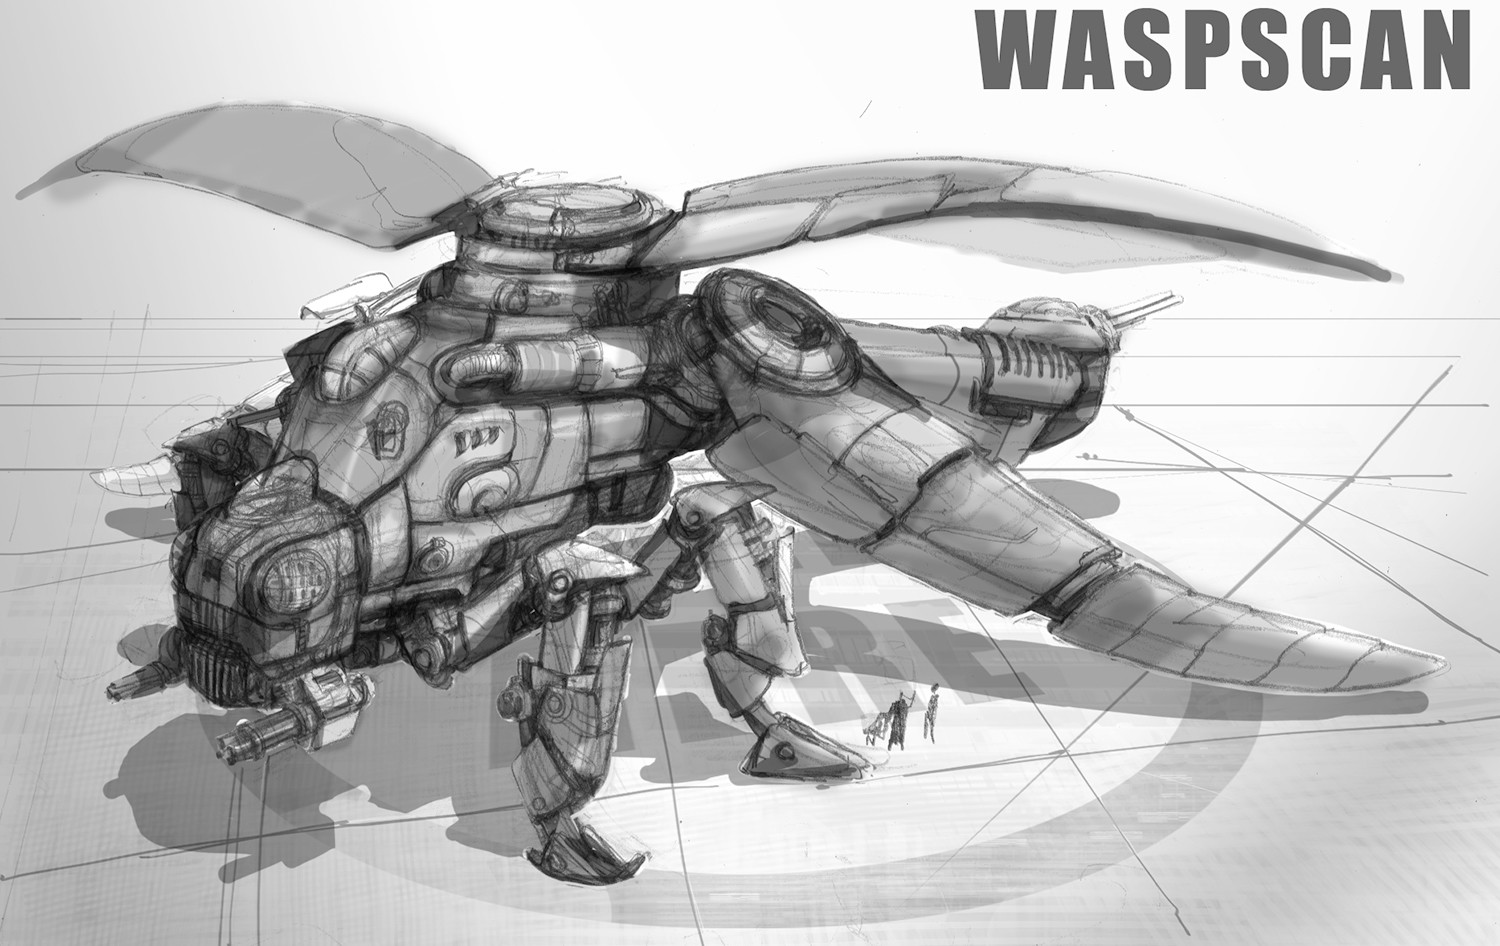 Wasp Scan Battle Ship concept